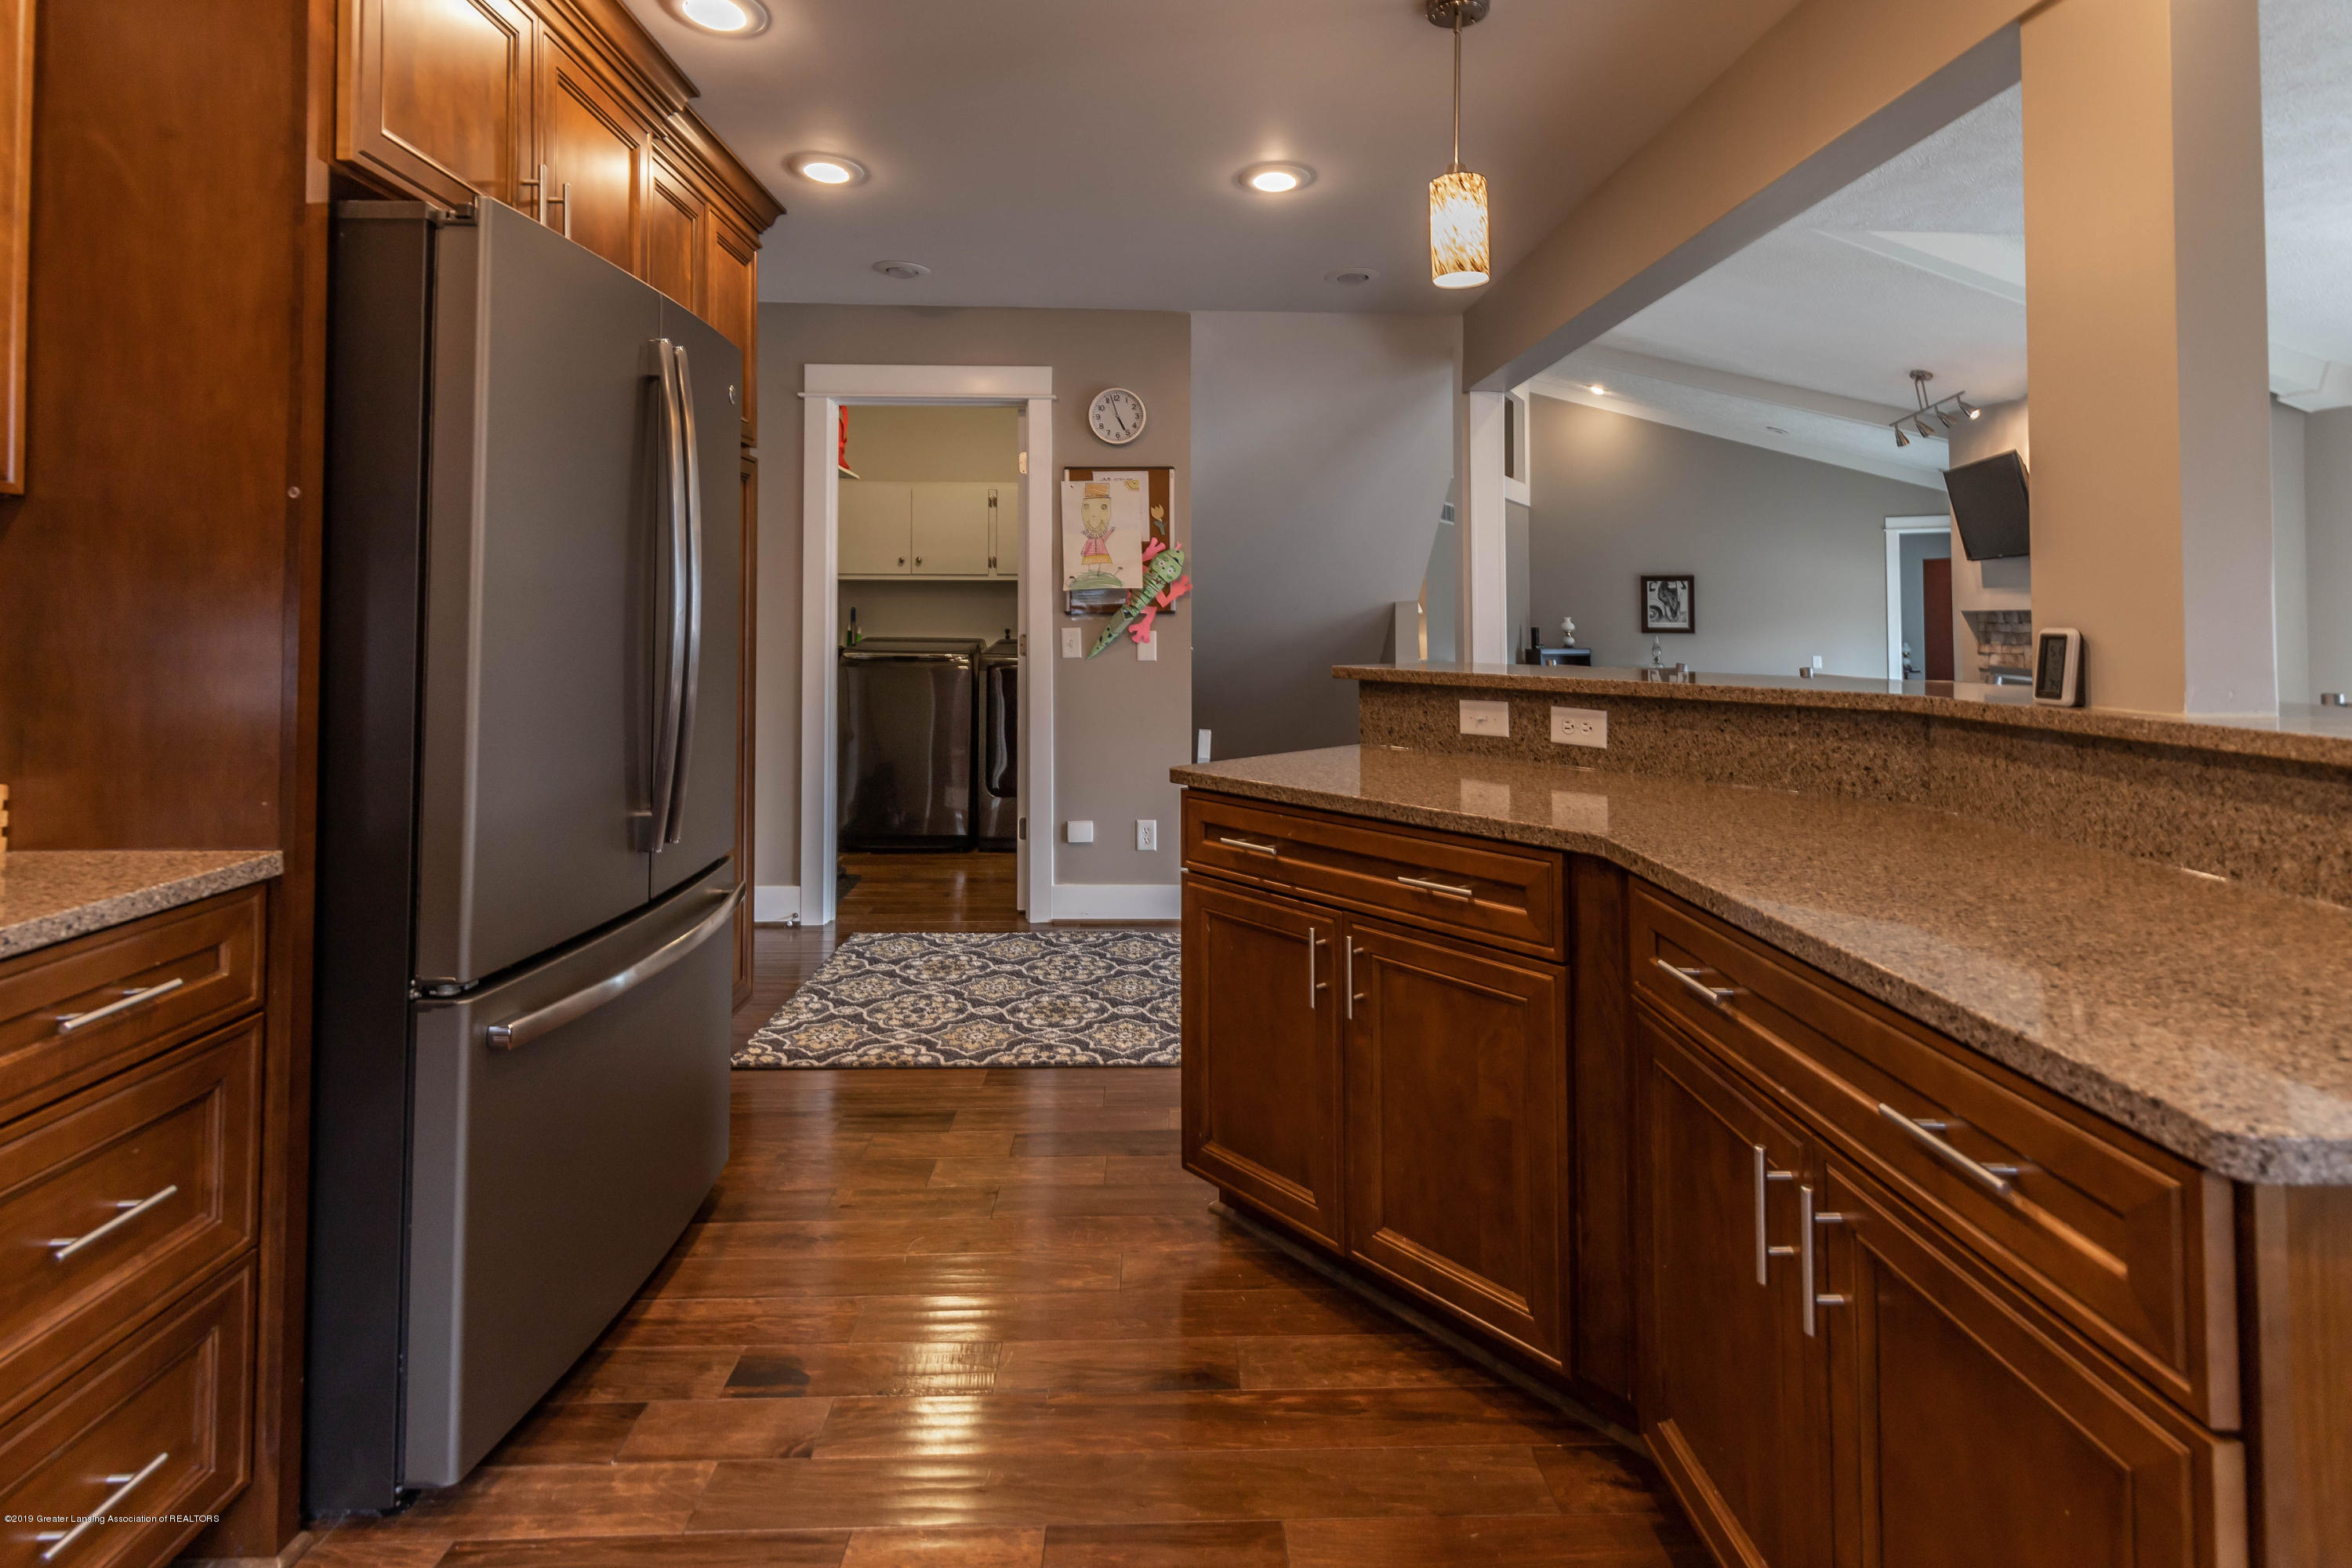 1701 Wyngarden Ln - Kitchen - 32